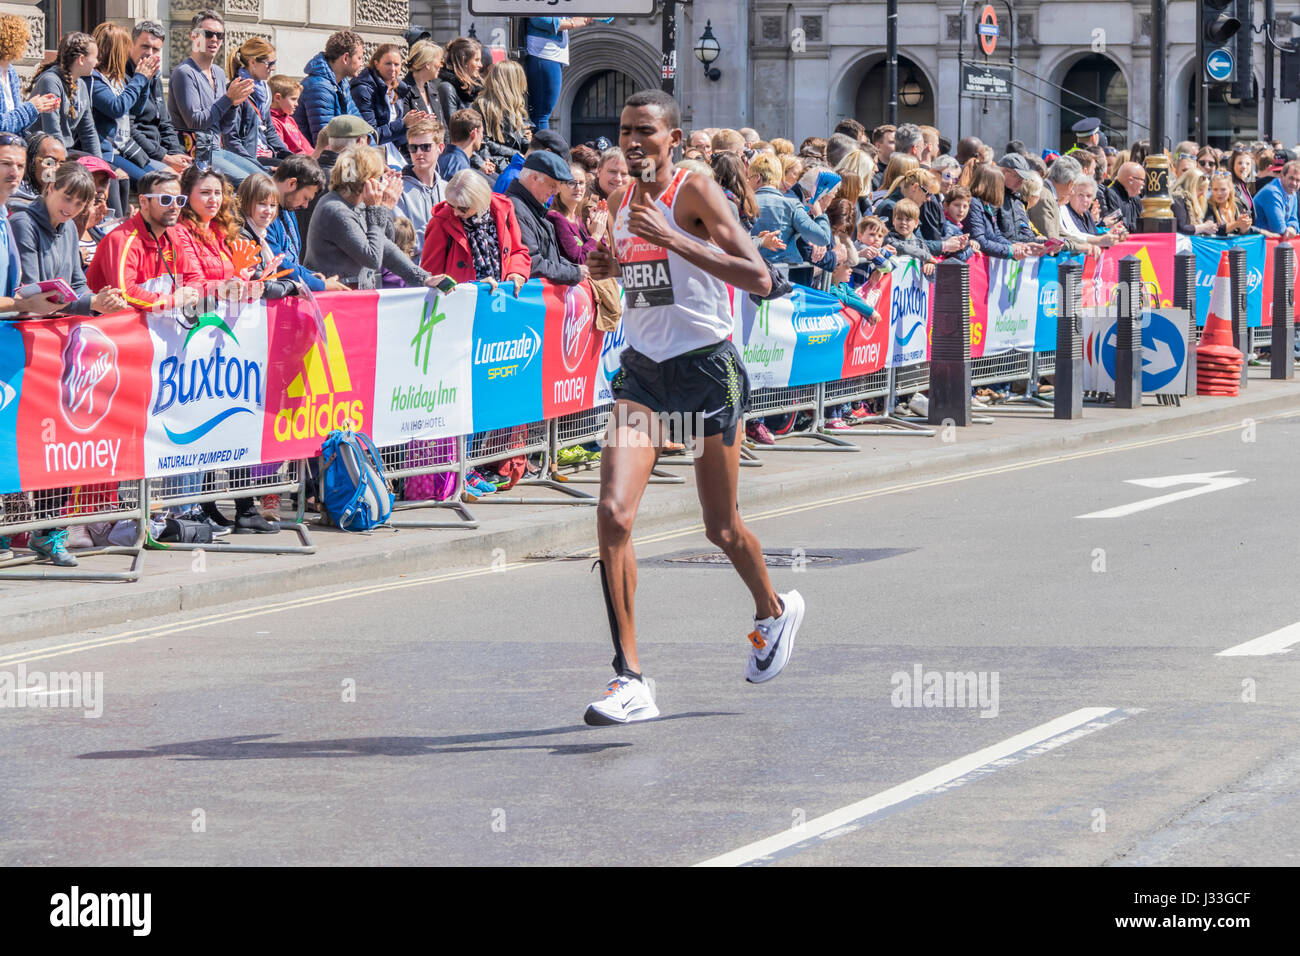 Tesfaye Abera at the London Marathon 2017 - Stock Image